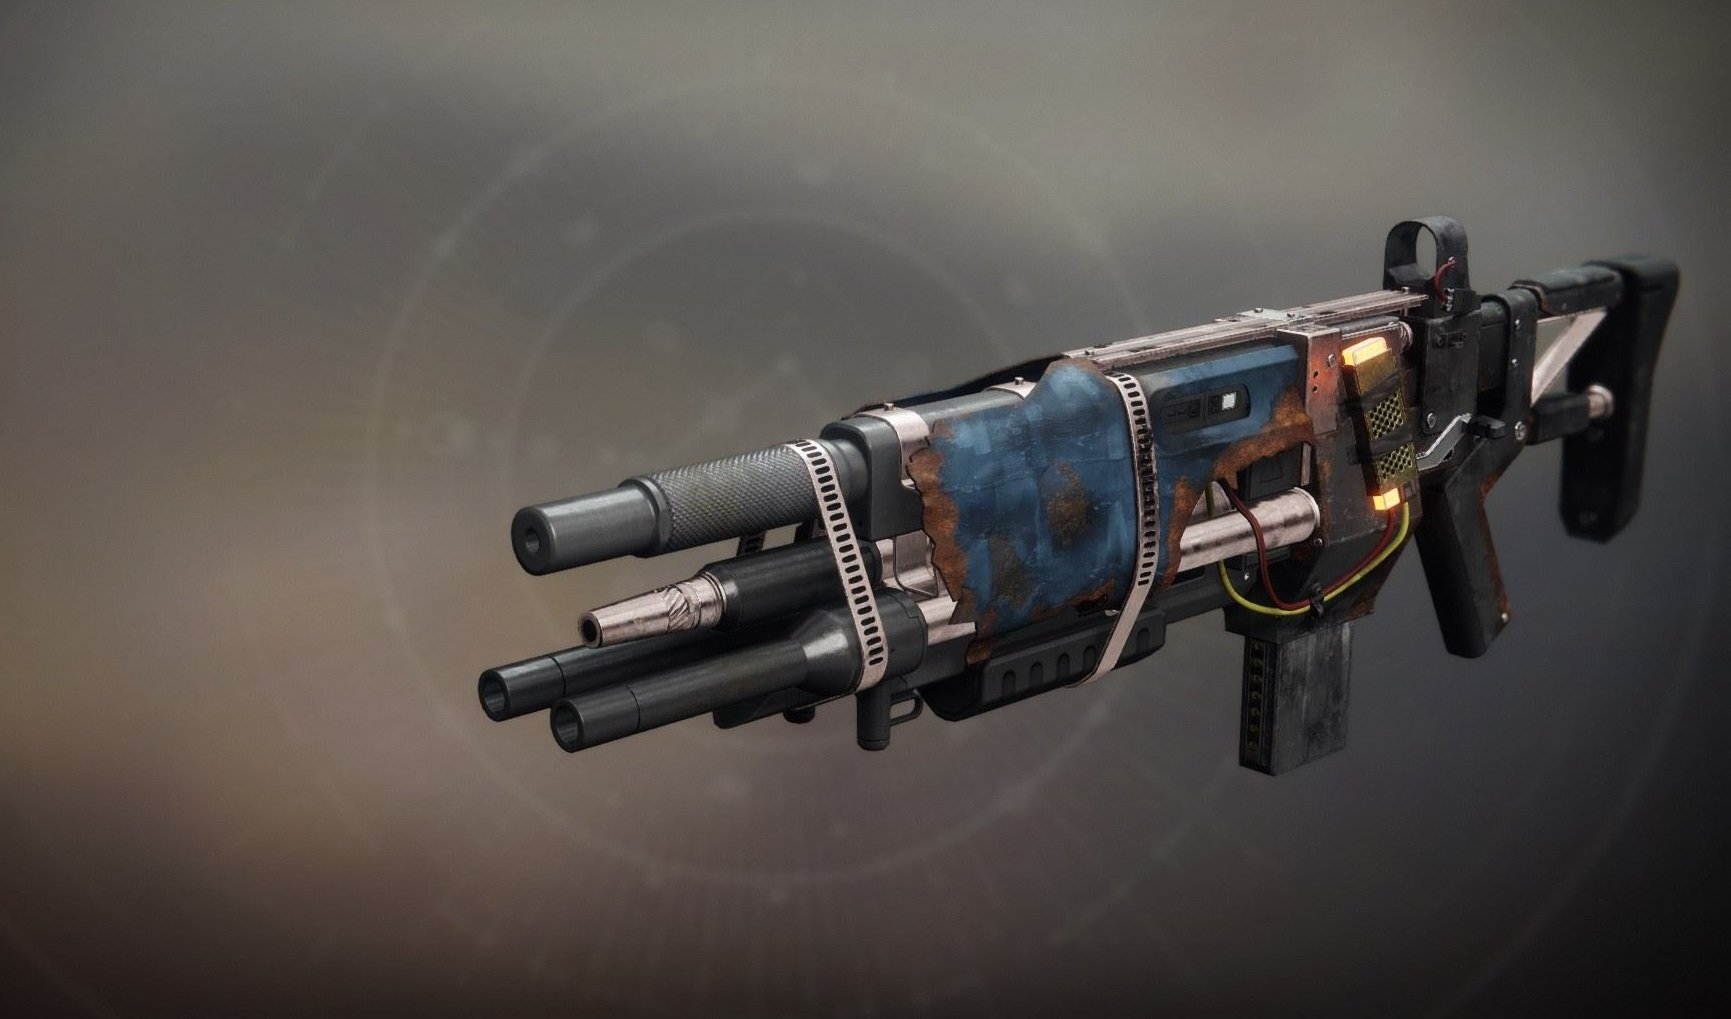 What Xur is selling in Destiny 2 - November 8, 2019